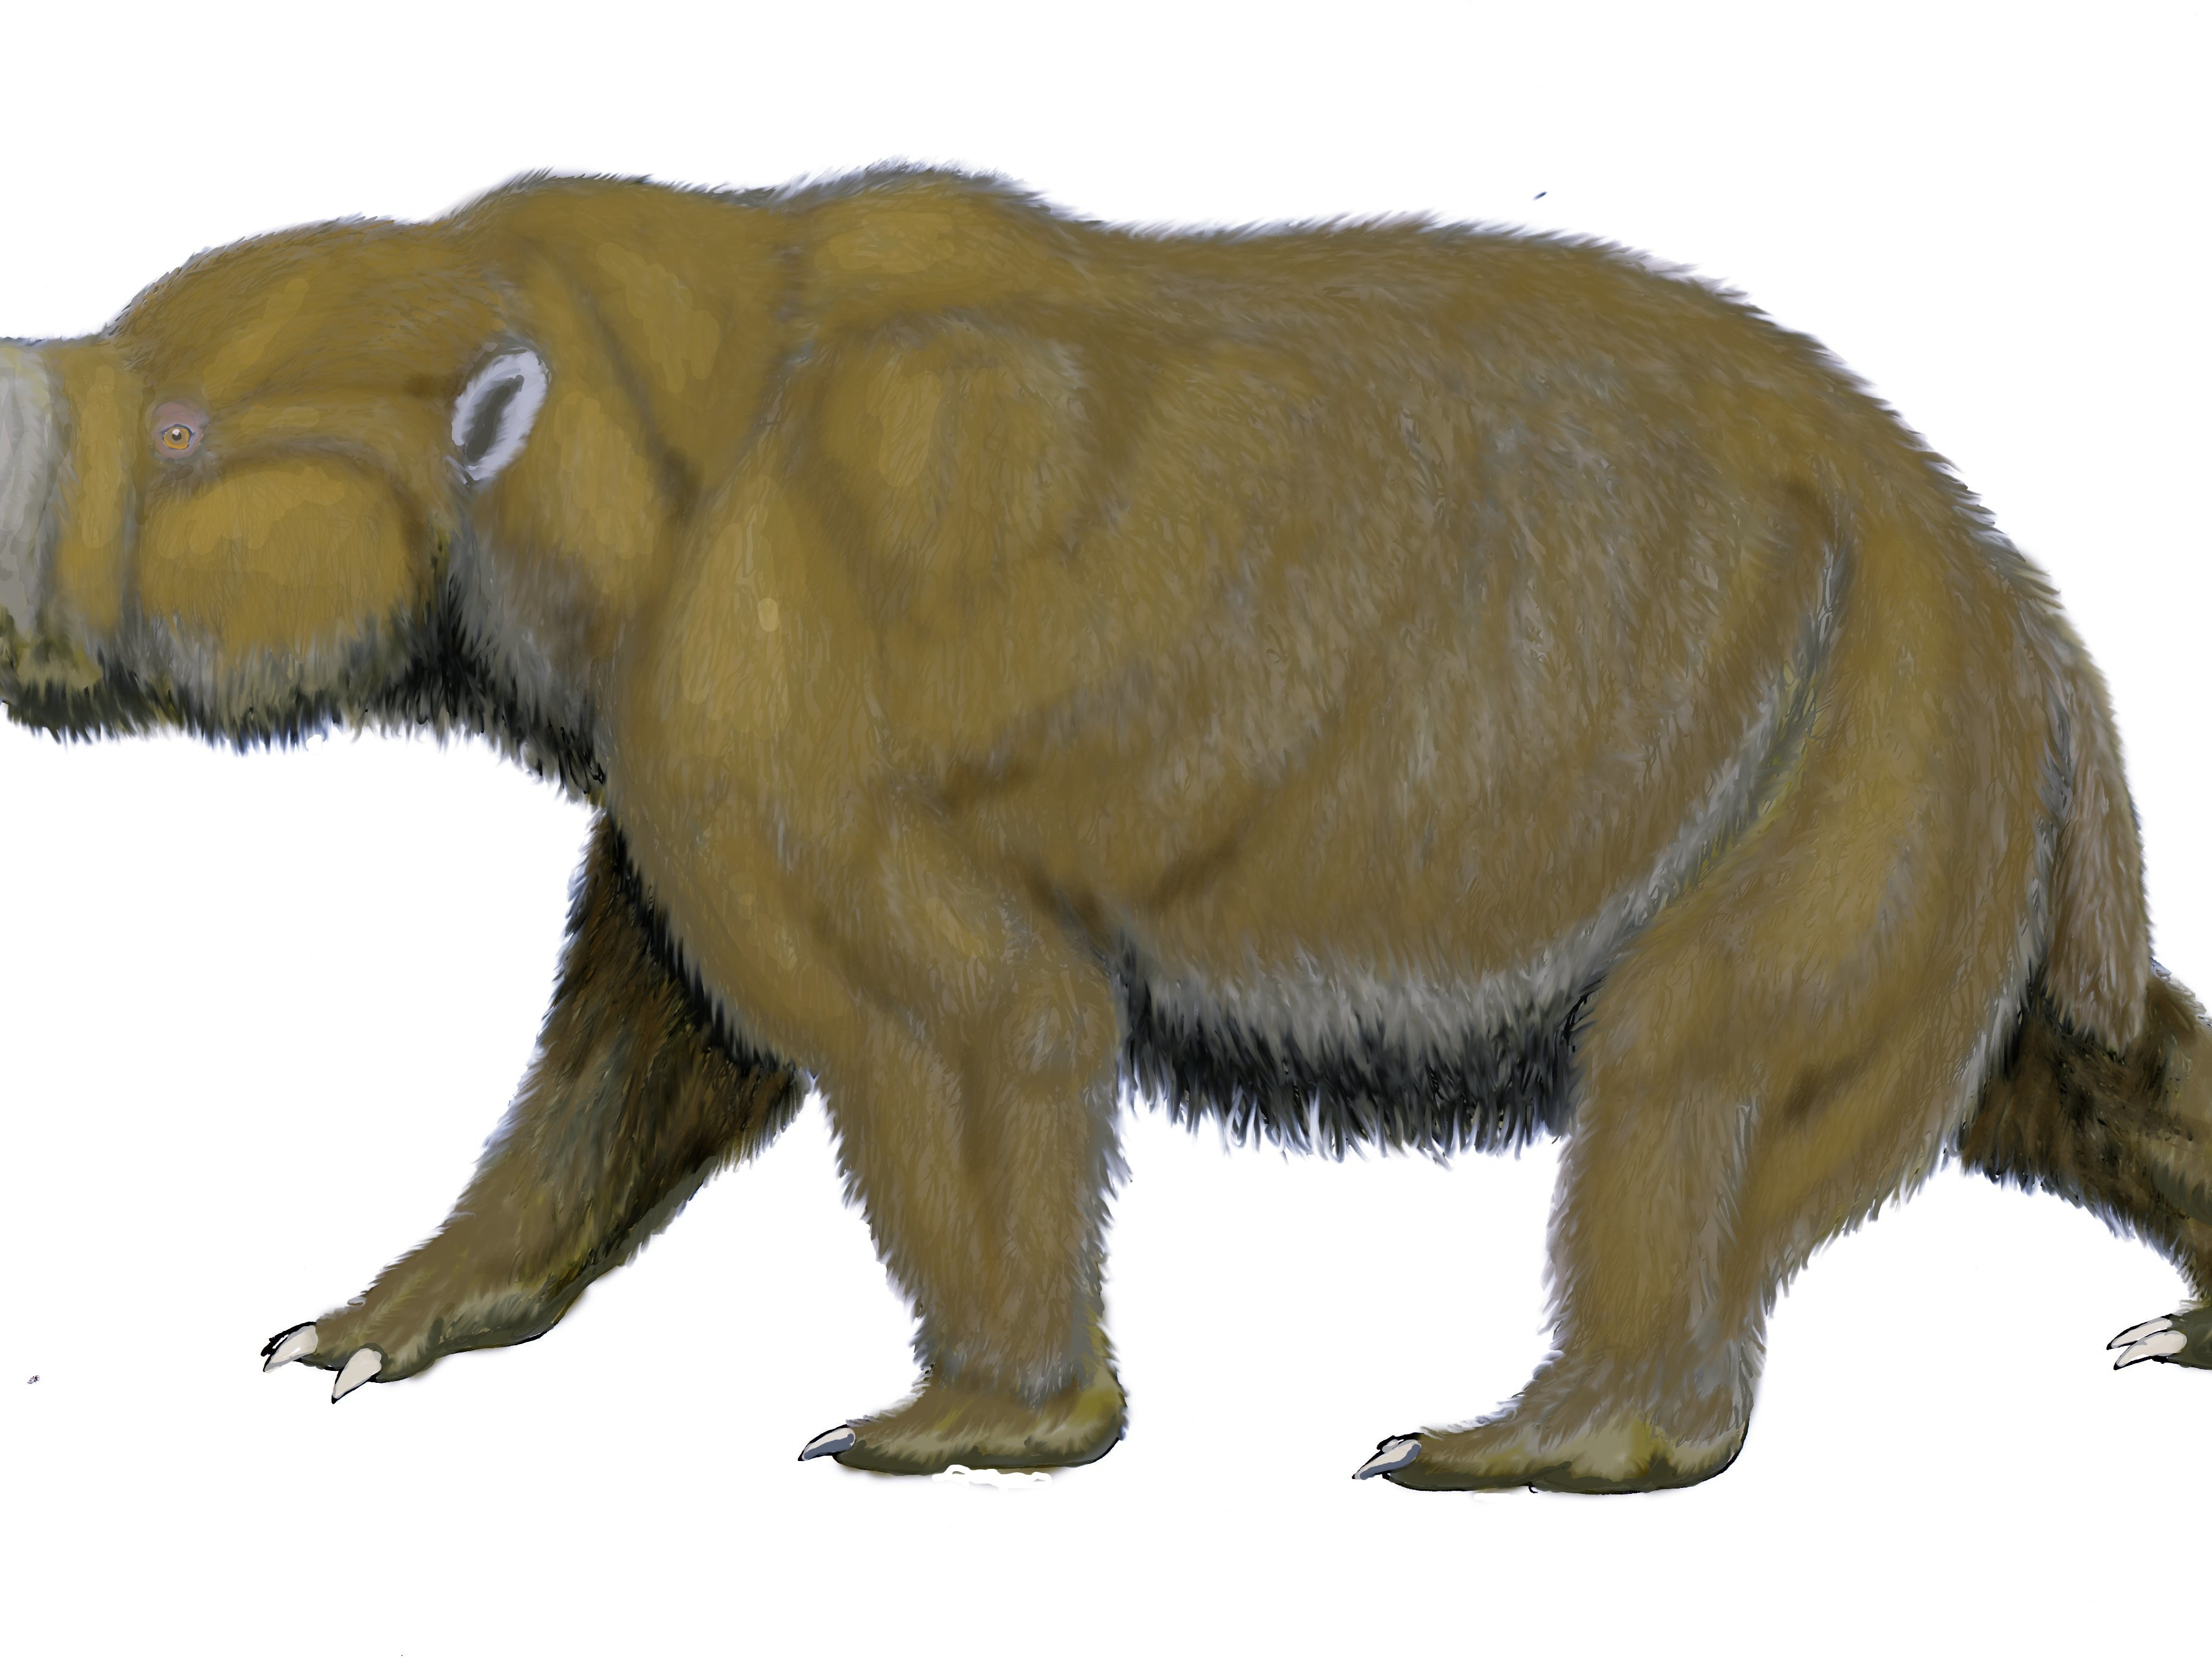 Diprotodons were giant marsupials that lived on the Australian continent for over 1 million years but went extinct shortly after humans arrived.